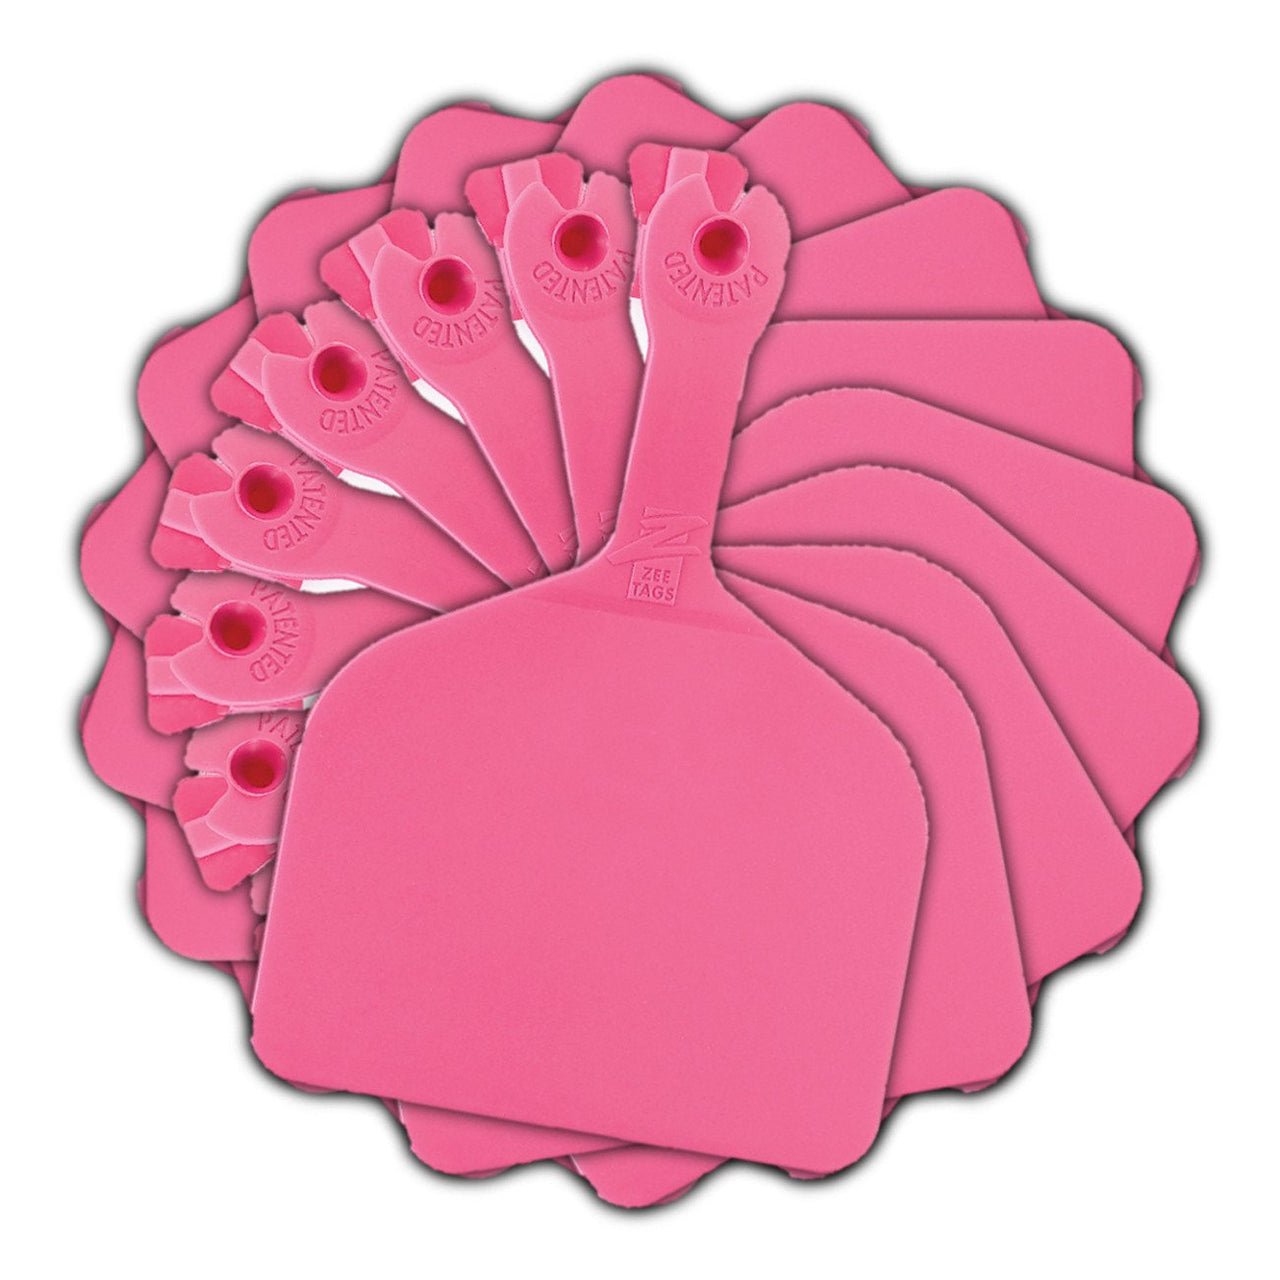 Z Tags Feedlot Blank - Pink (50 Pack) - Feedlot Tags Blank Z Tags - Canada